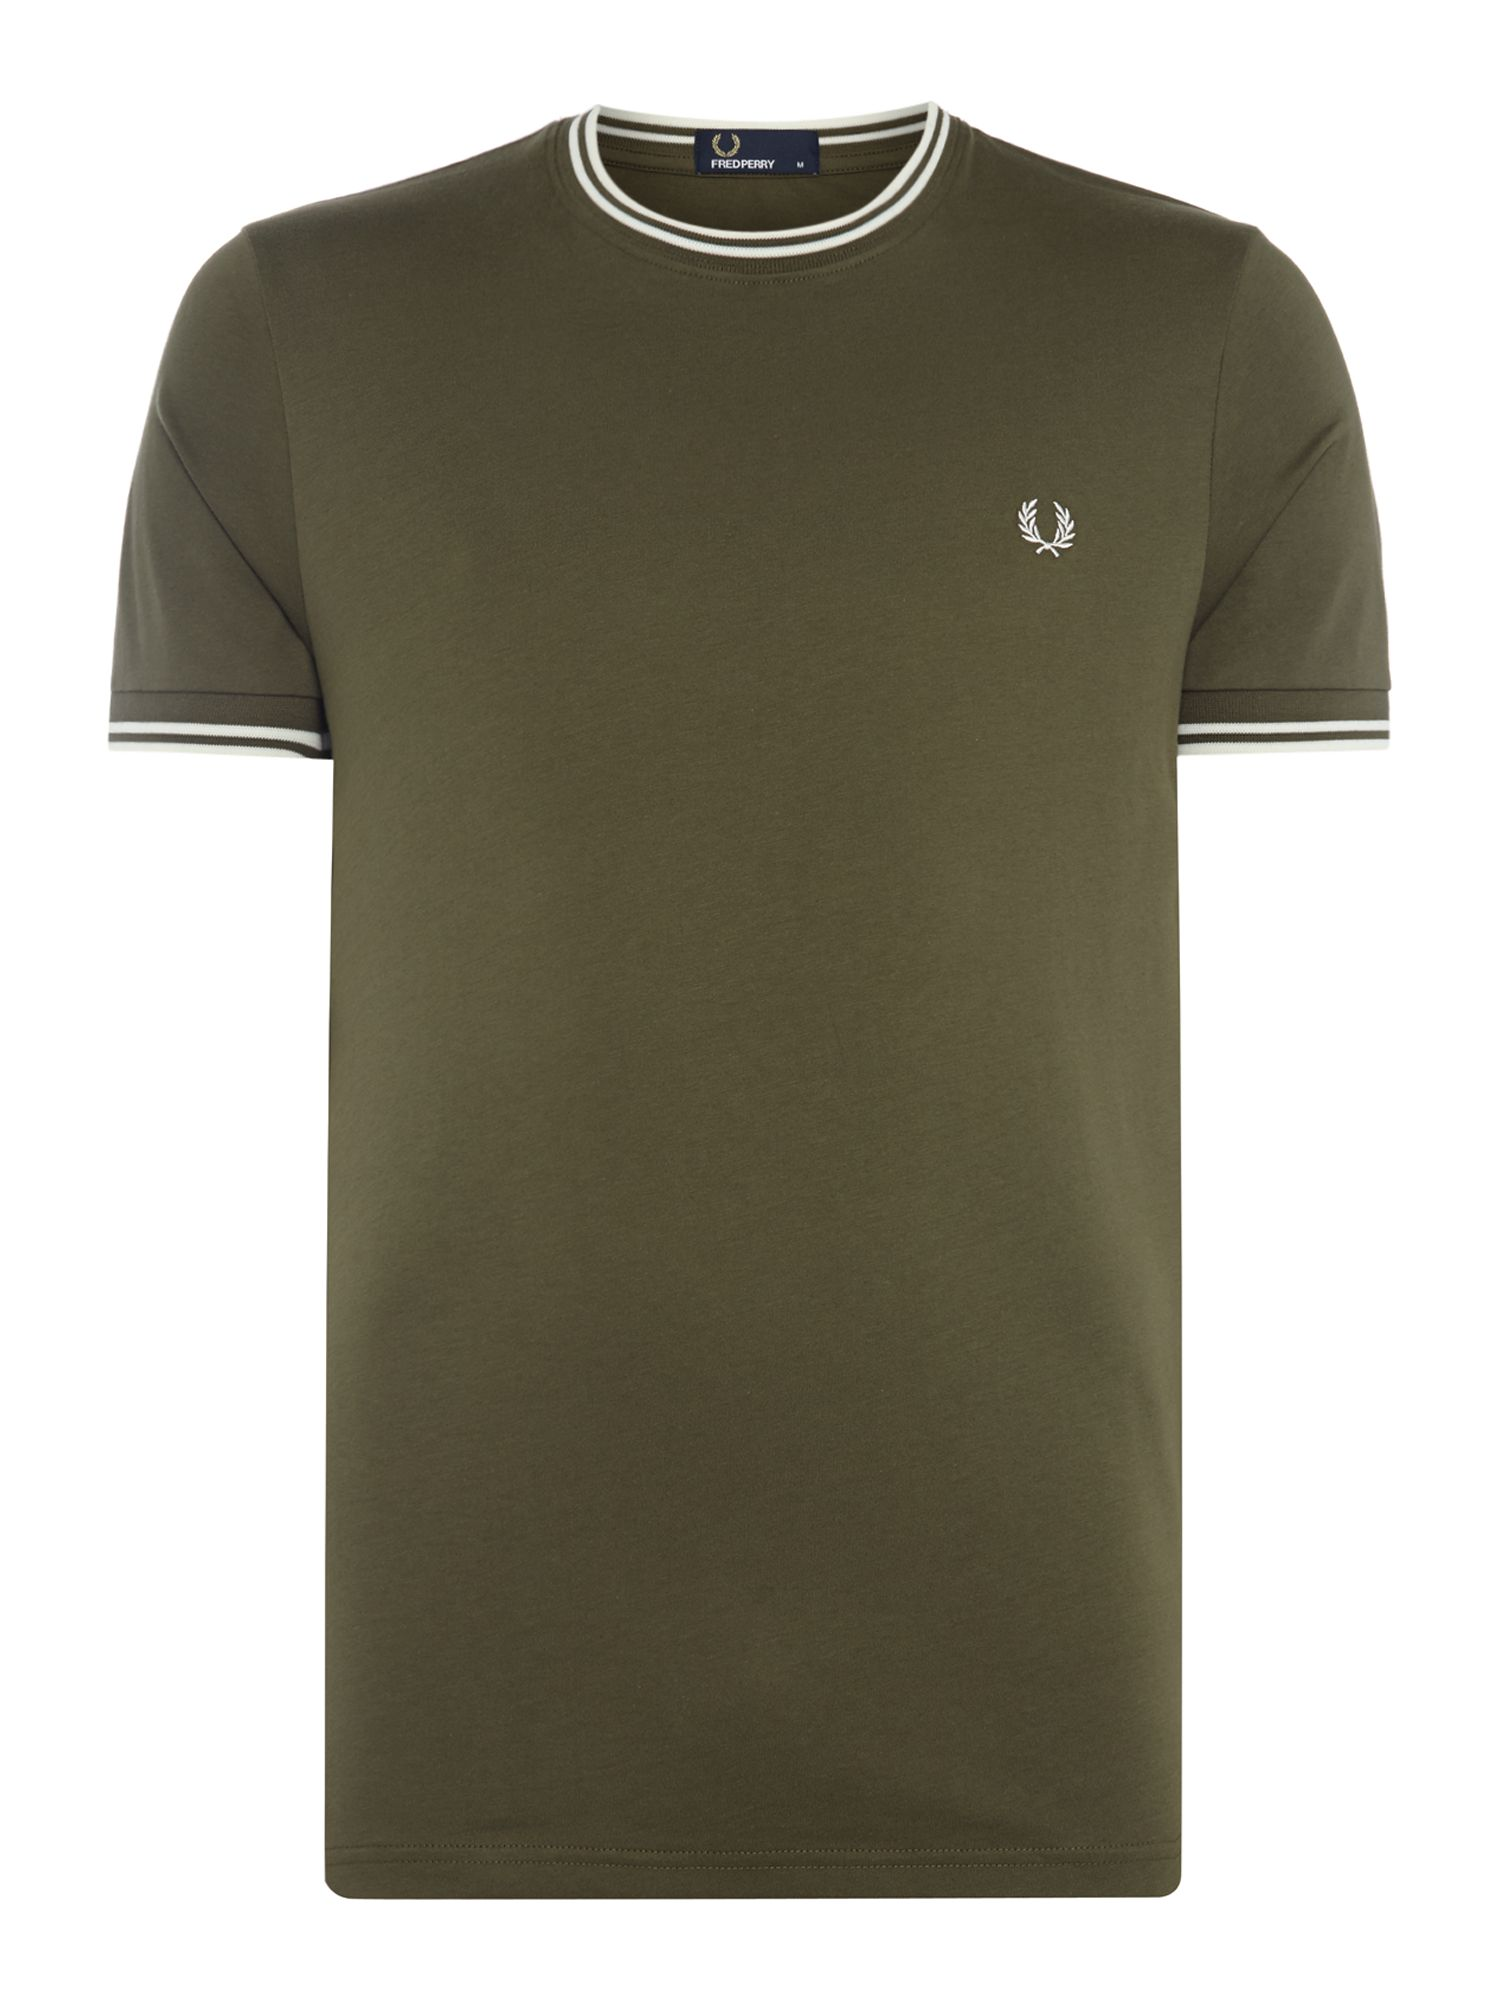 Men's Fred Perry Crew neck twin tipped collar t-shirt, Ivy